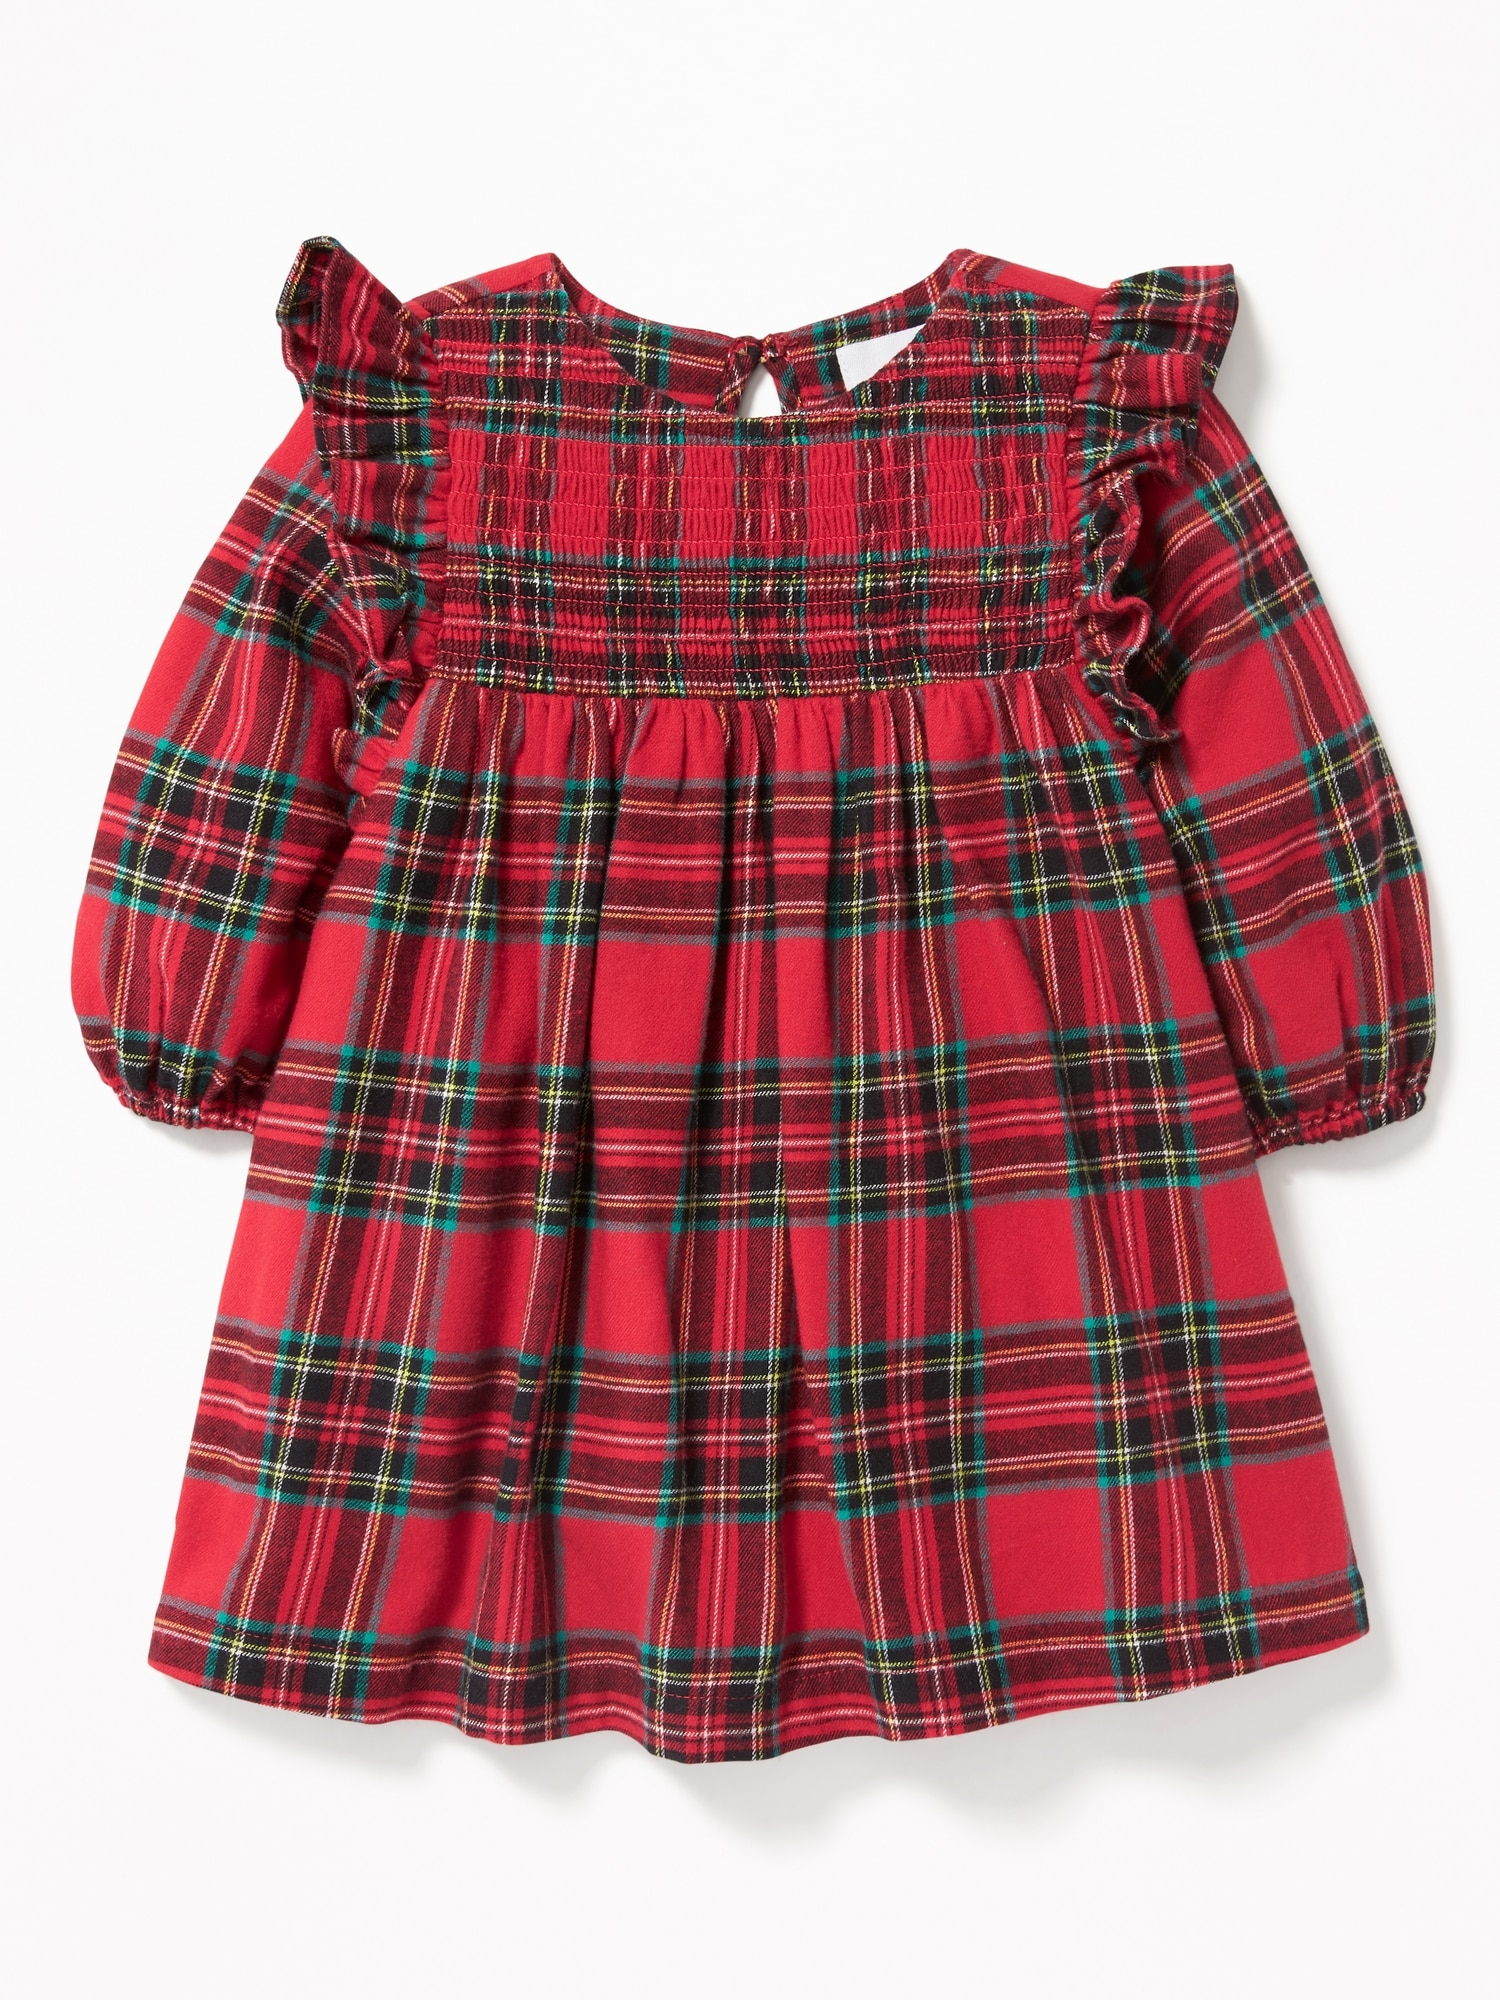 b017641d57e3d Holiday Party Outfits for Little Girls. Plaid Ruffle Trim Dress